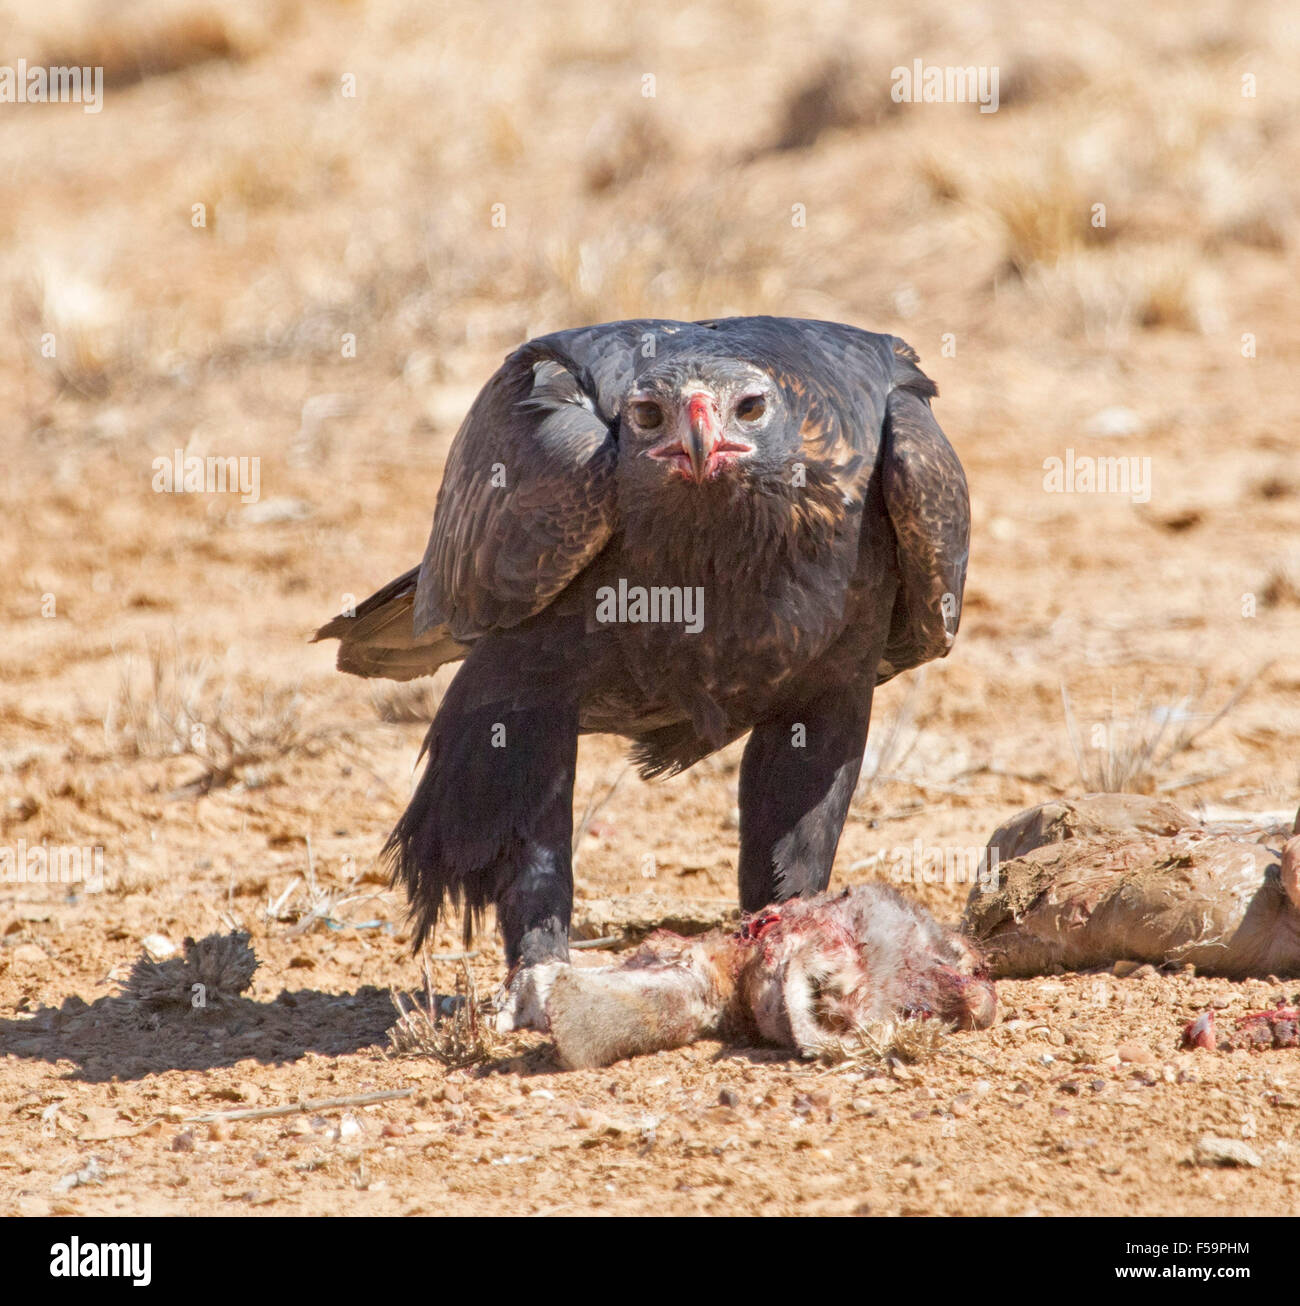 Majestic wedge-tailed eagle, Aquila audax, feeding on remains of carcass of kangaroo & staring at camera in - Stock Image